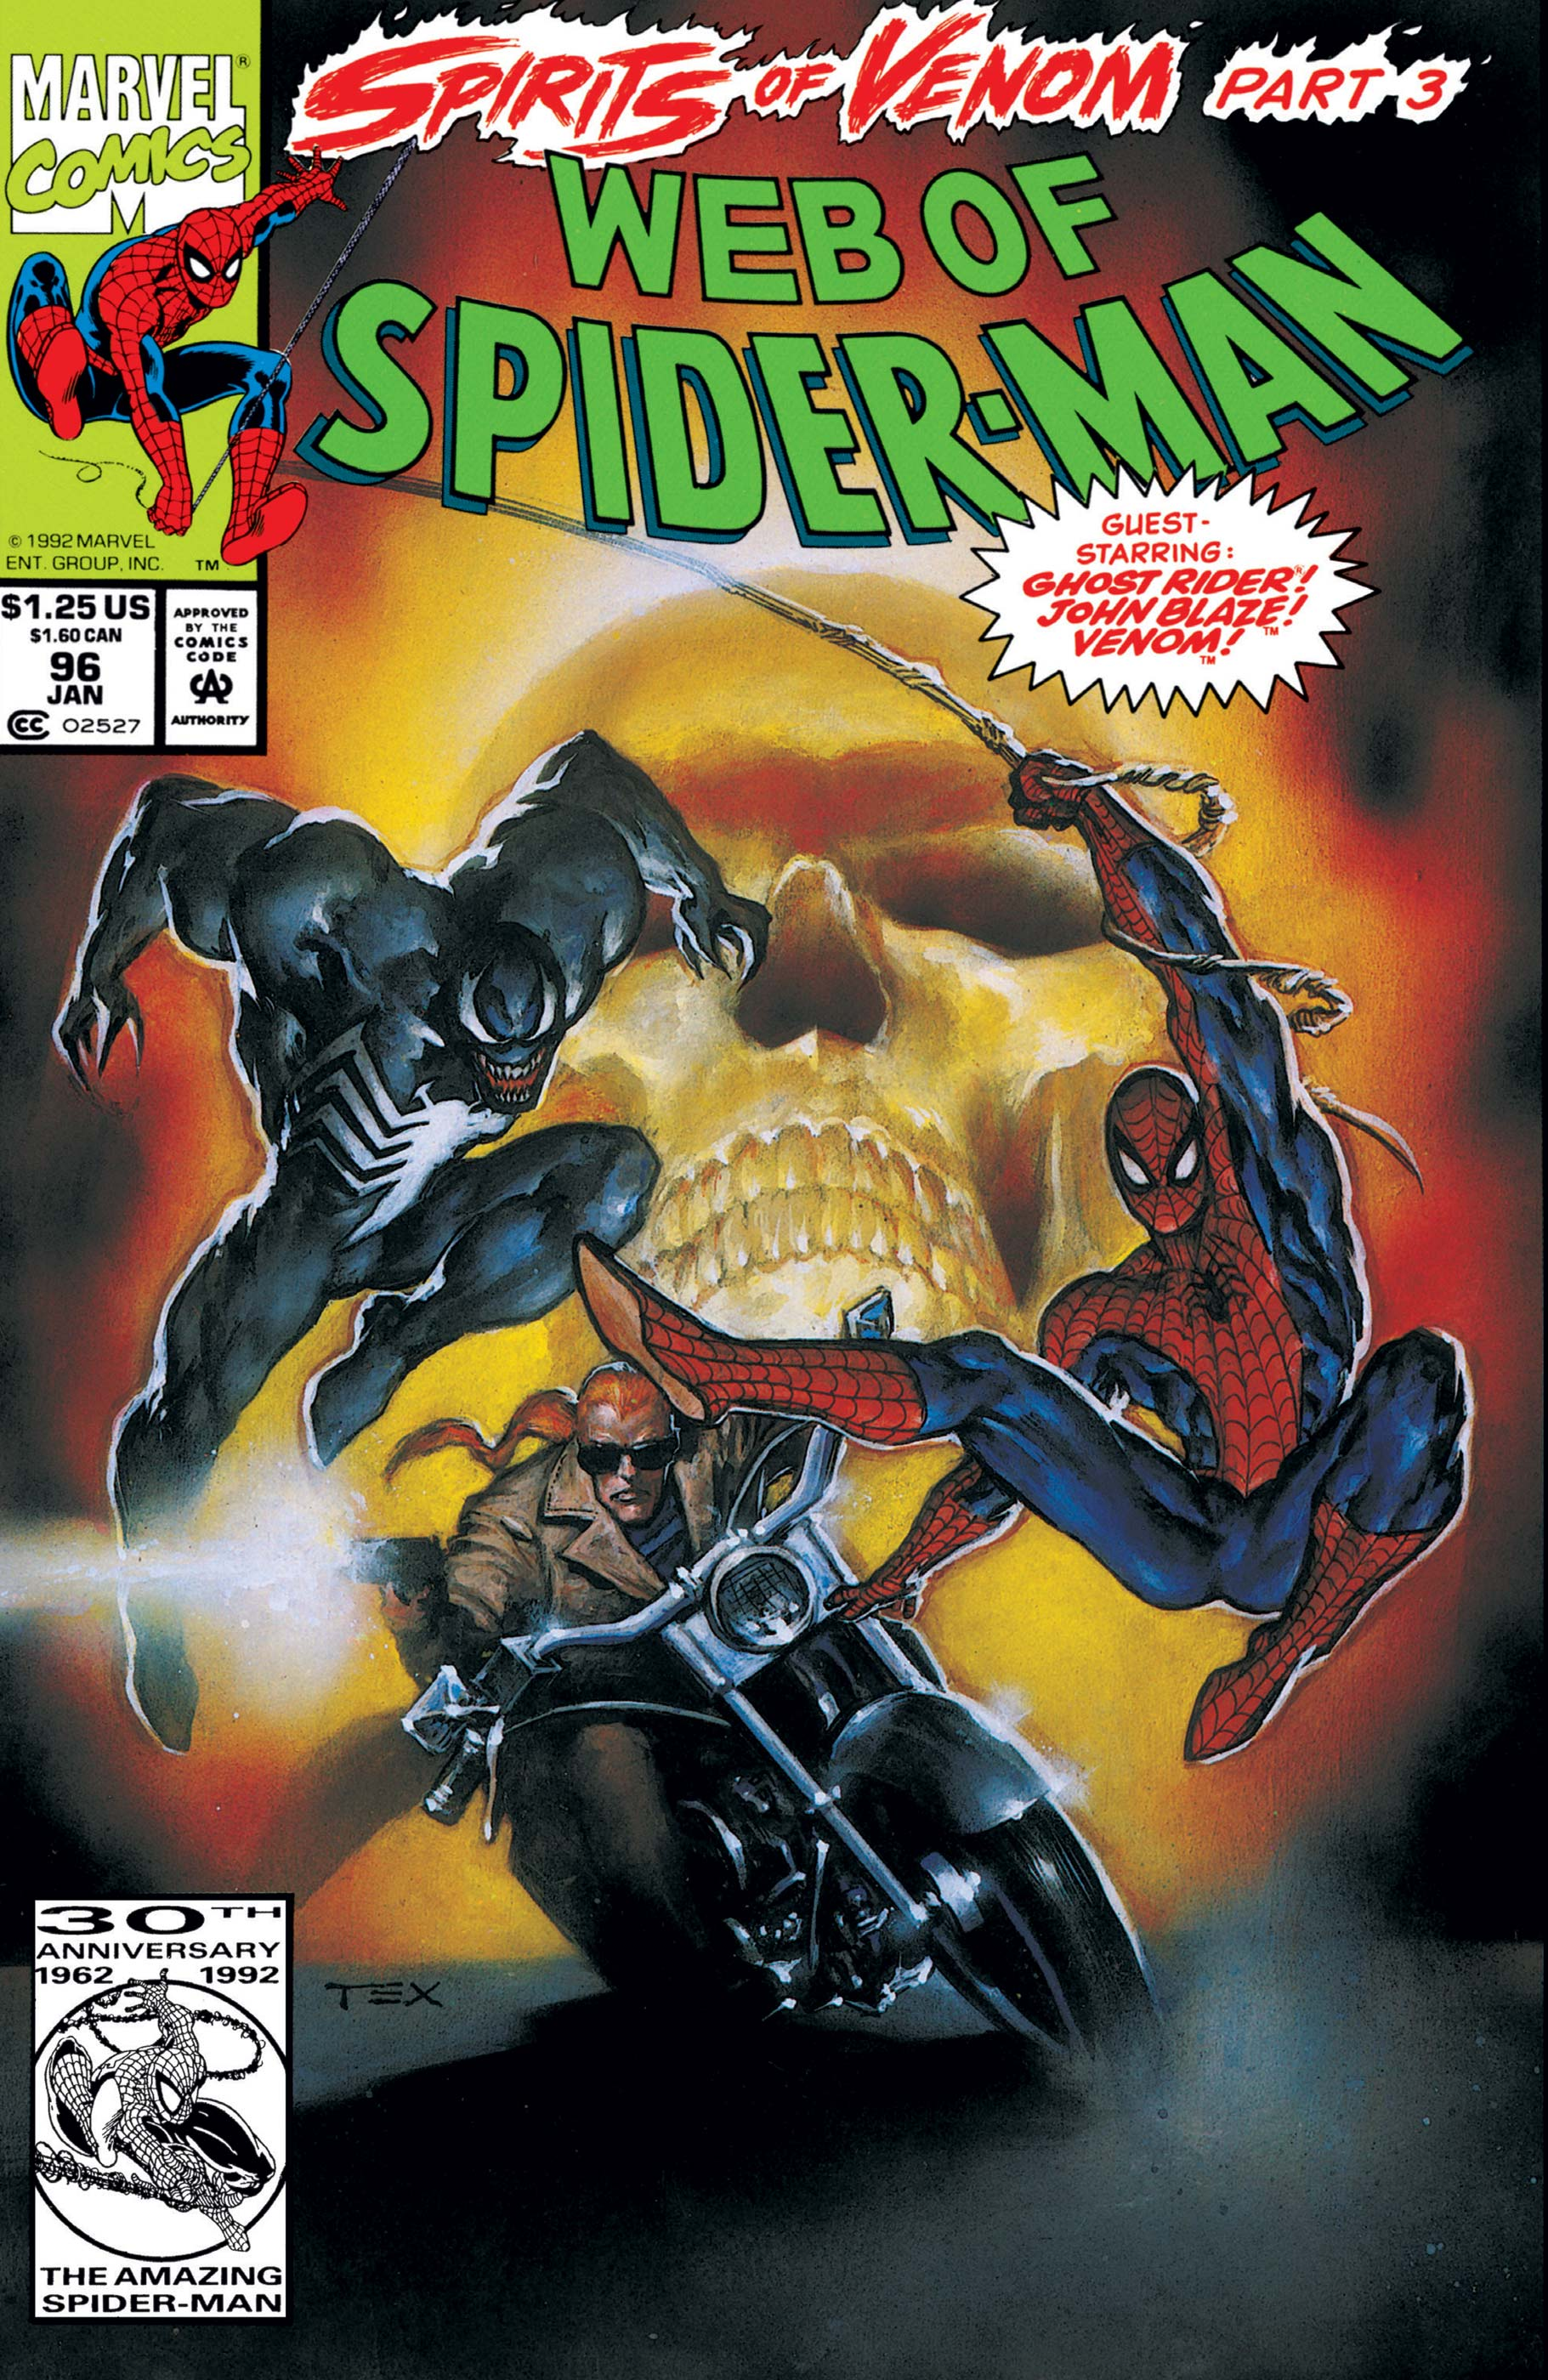 Web of Spider-Man (1985) #96